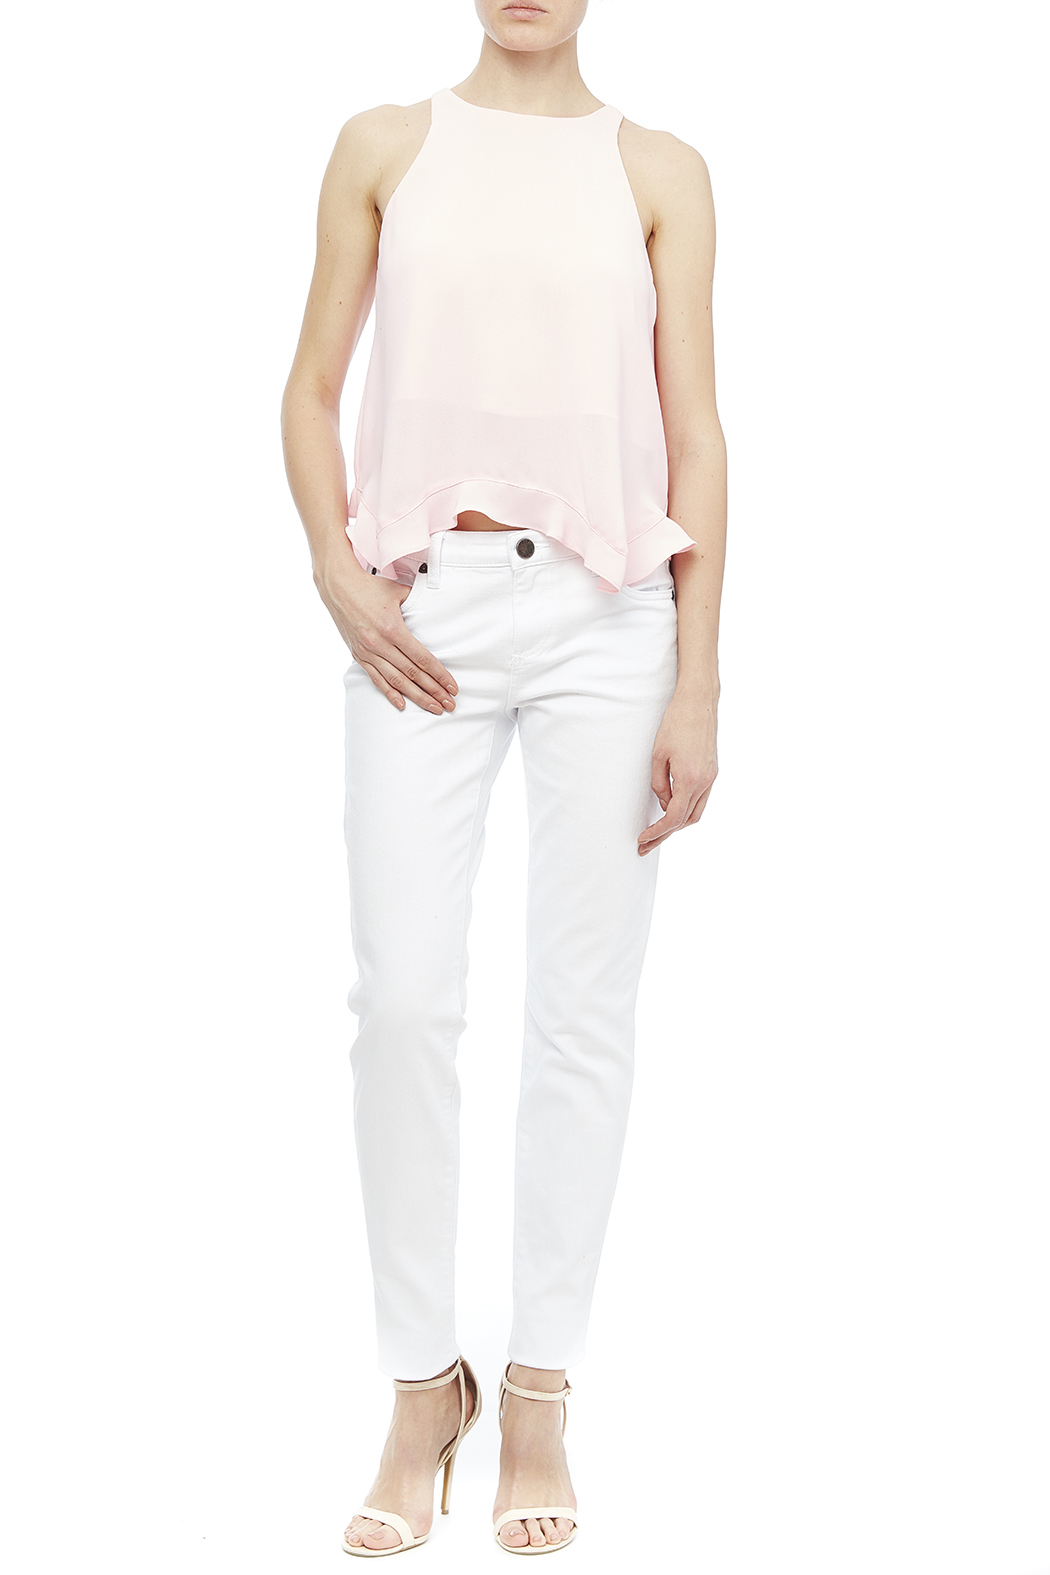 Kut from the Kloth White Skinny Jean - Front Full Image